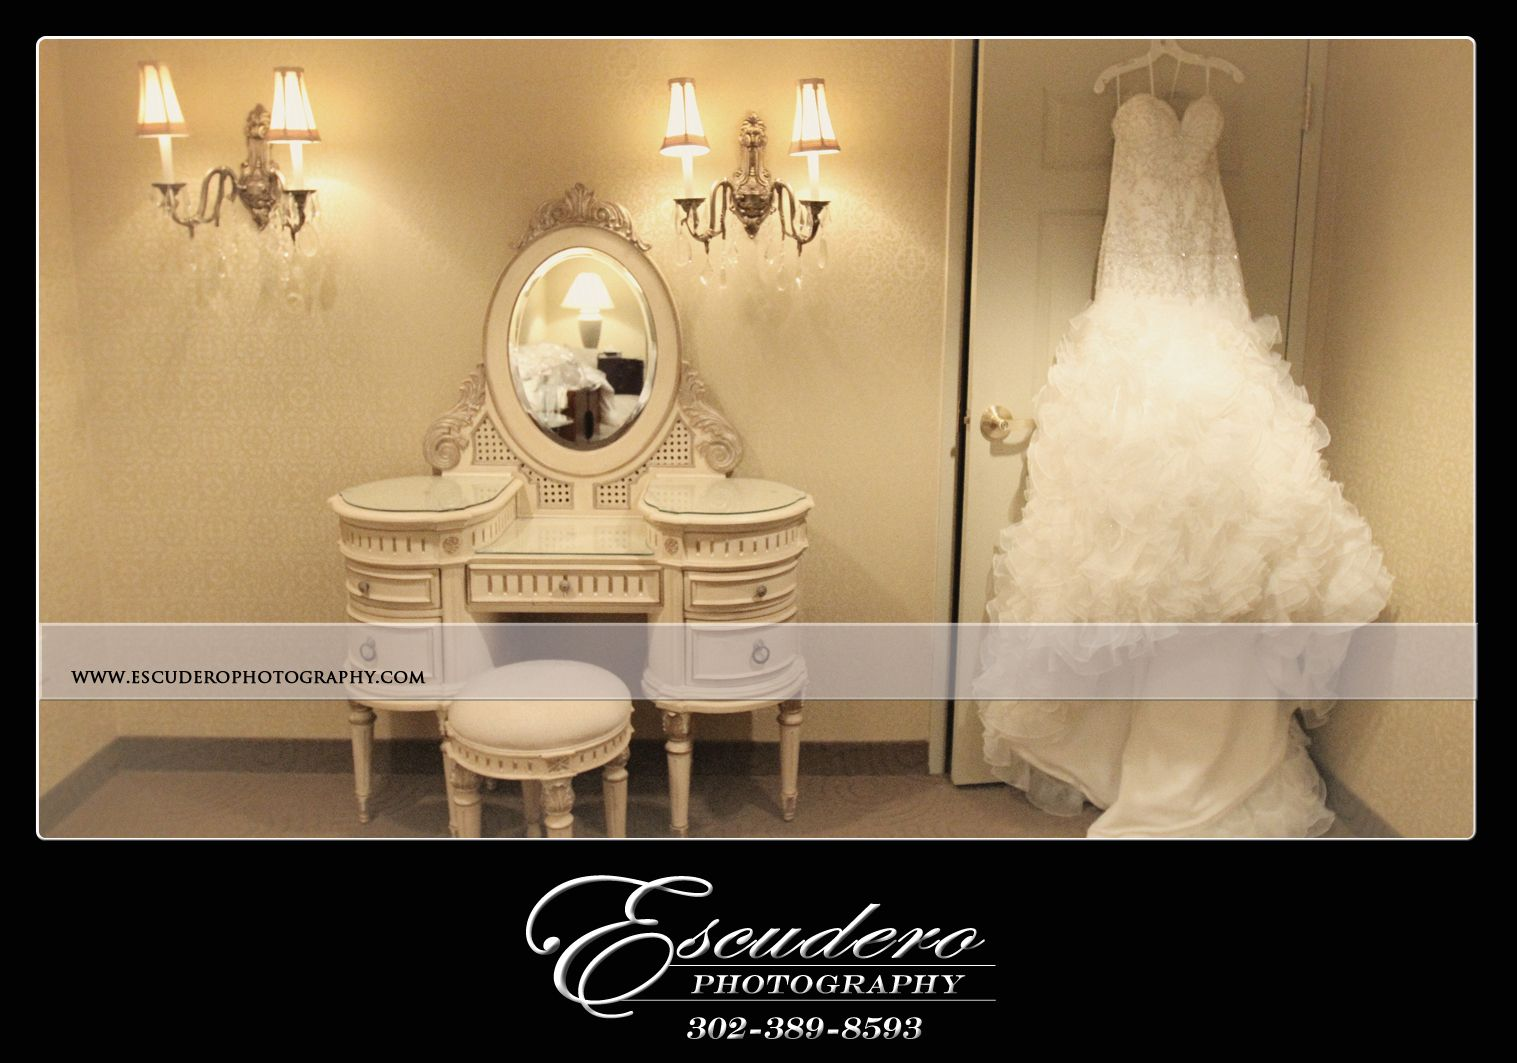 A stunning dress in an elegant room. Don't forget to have this picture taken on your special day!